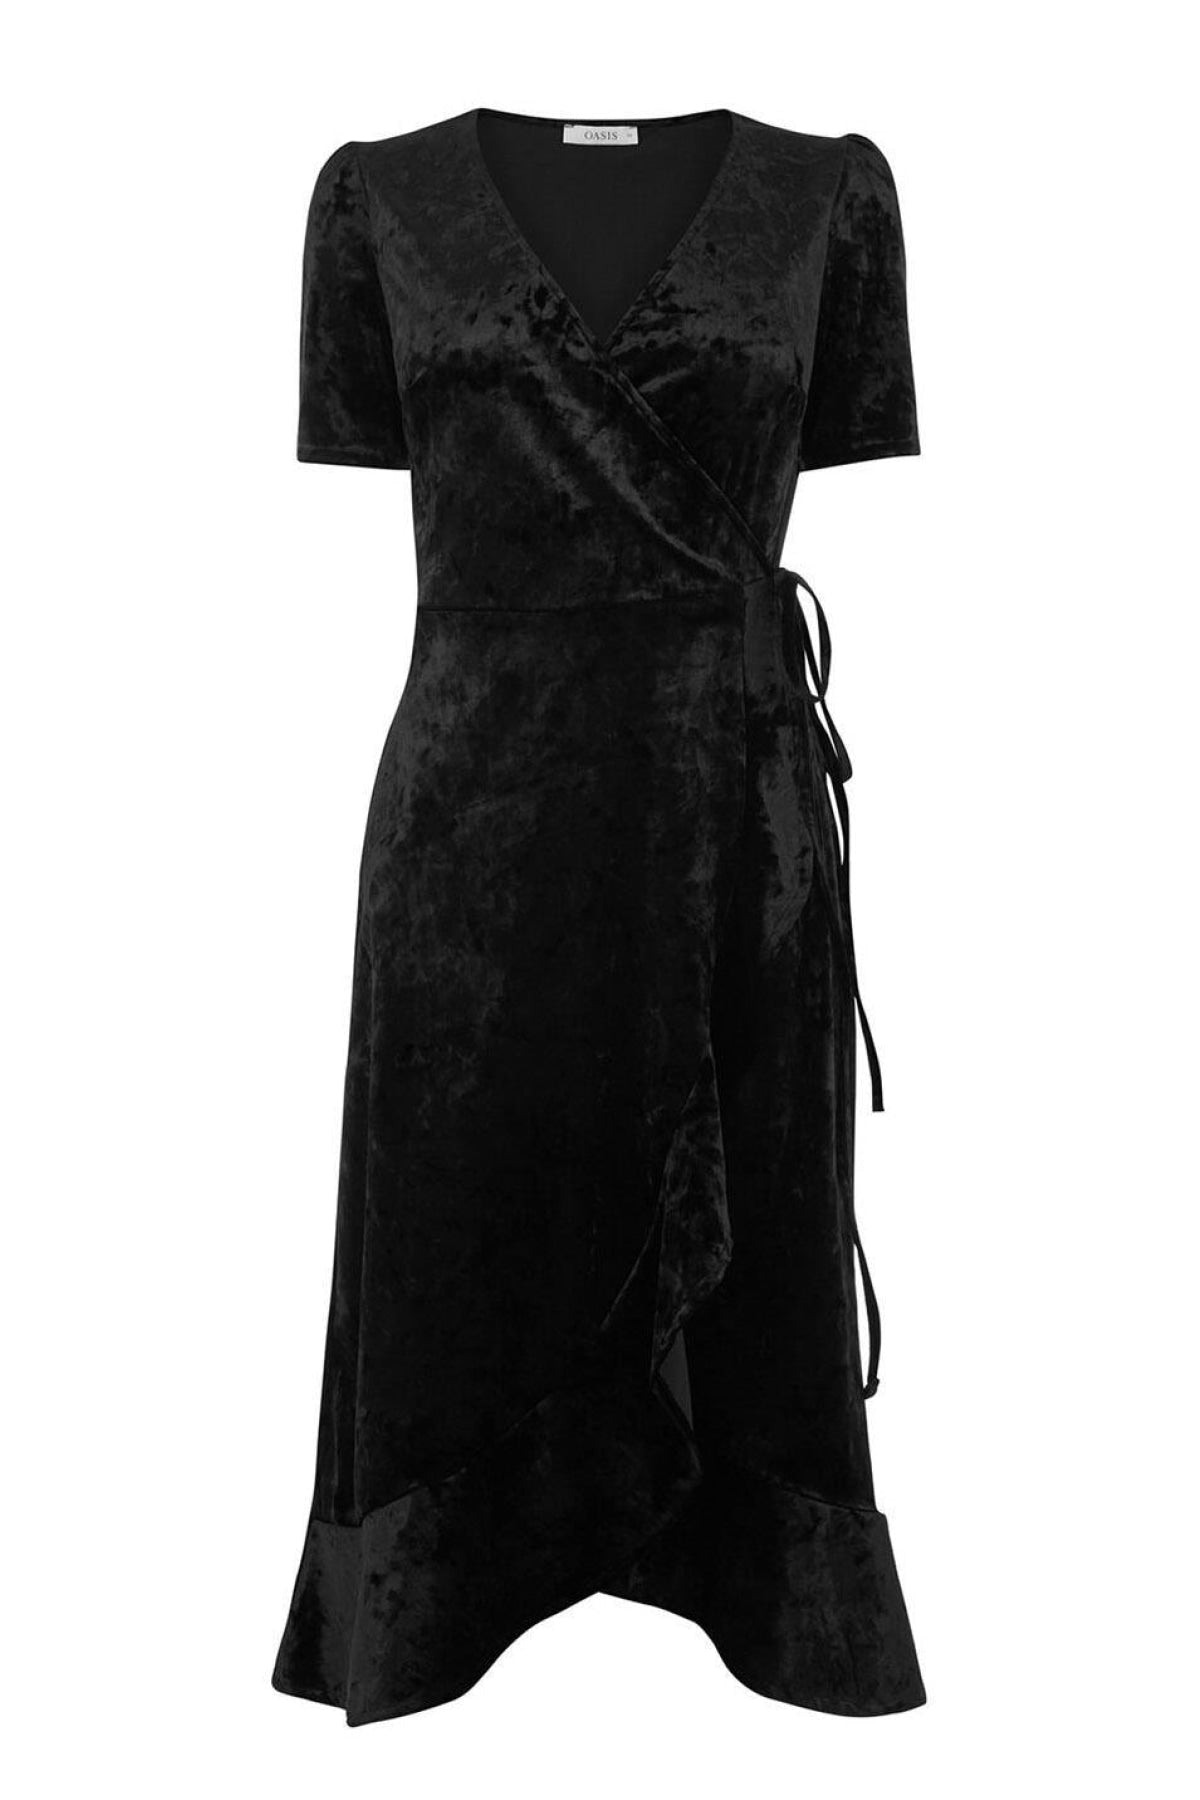 Oasis Ex Oasis Black Crushed Velvet Wrap Dress | Secret Label